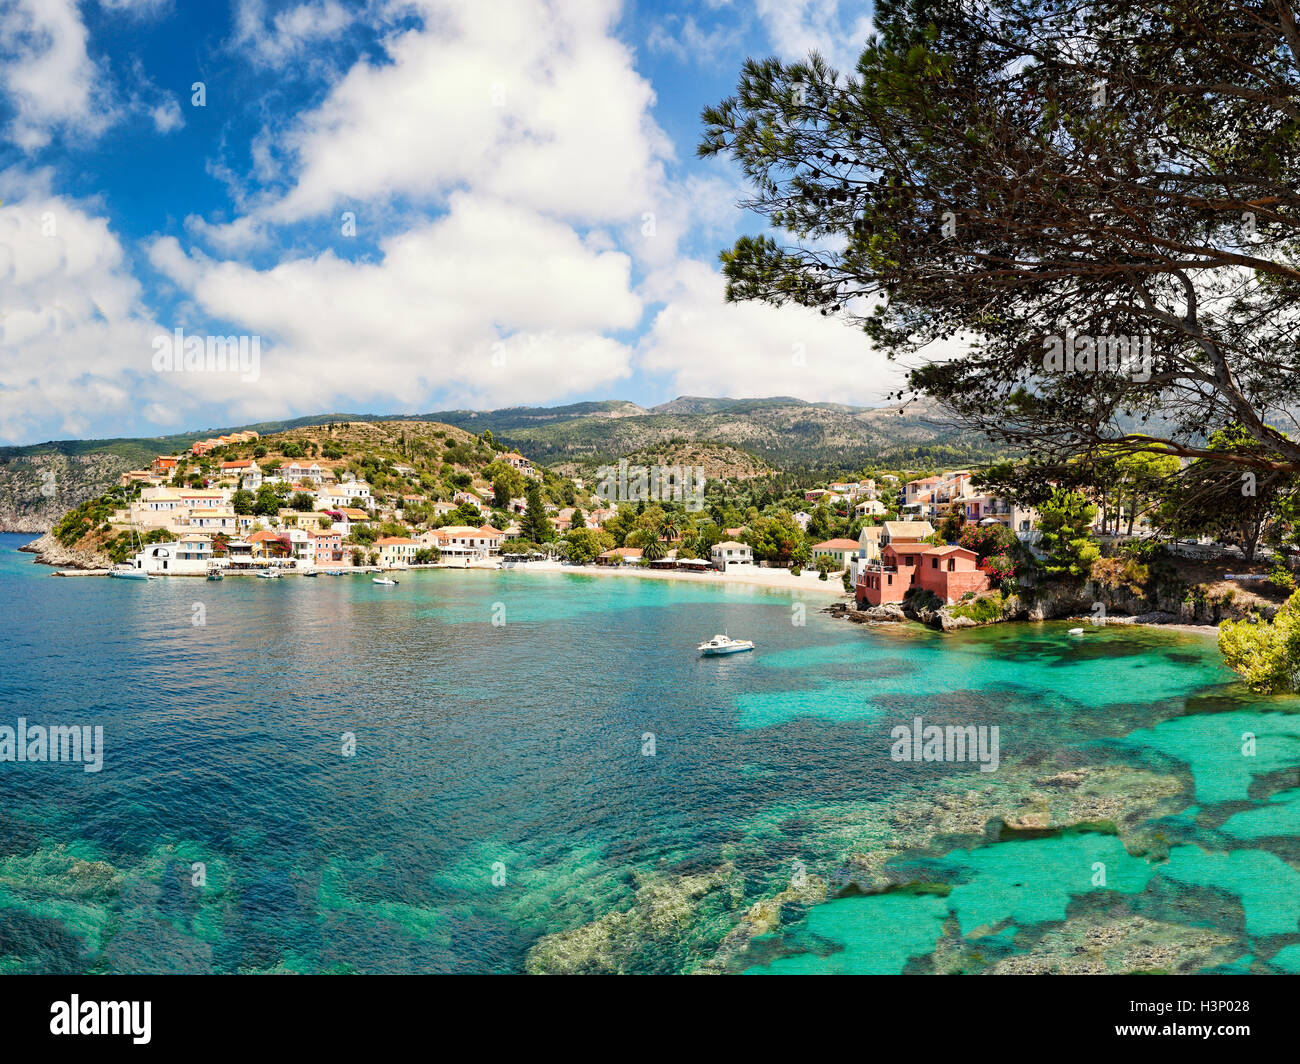 The famous village Assos in Kefalonia island, Greece - Stock Image